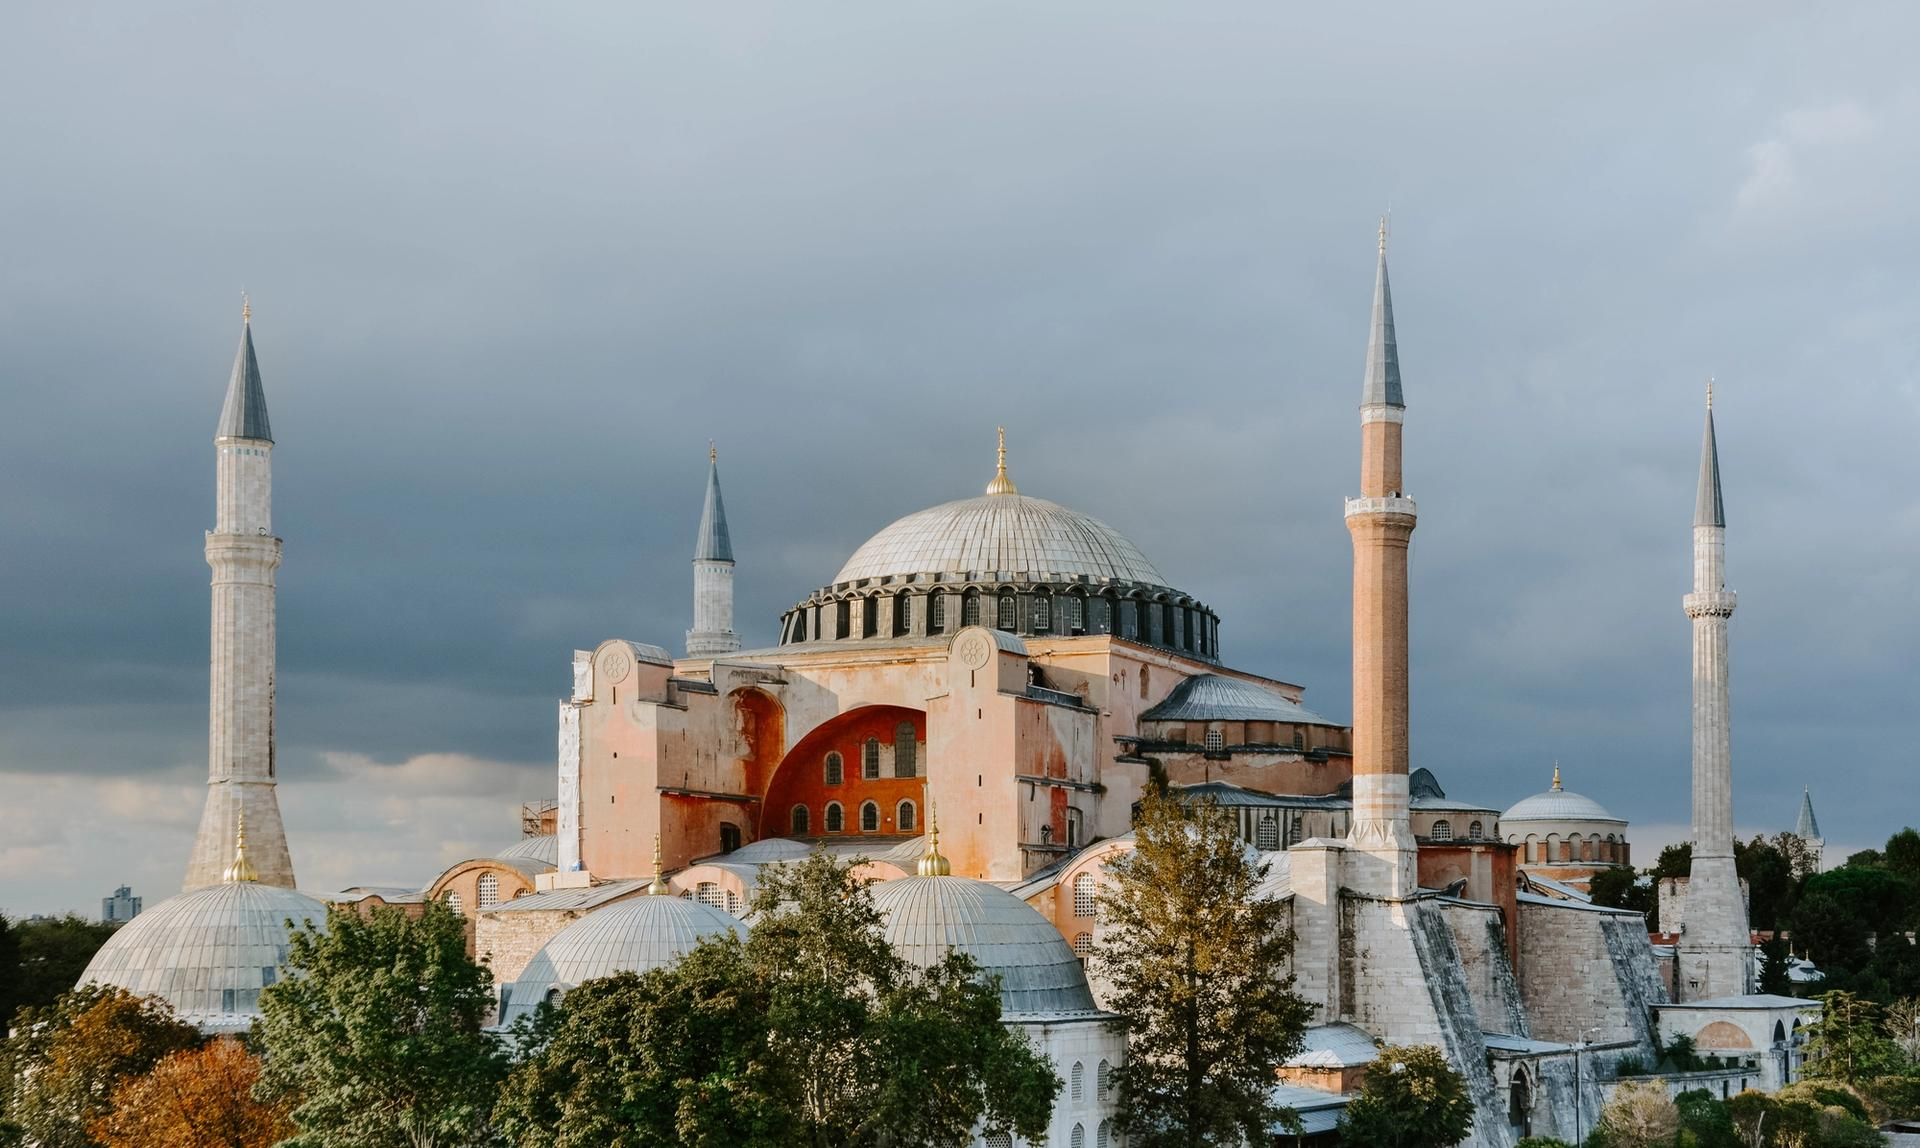 Built in AD 537, during the reign of the Byzantine emperor Justinian, the Hagia Sophia was the world's largest building and an engineering marvel of its time © Adli Wahid